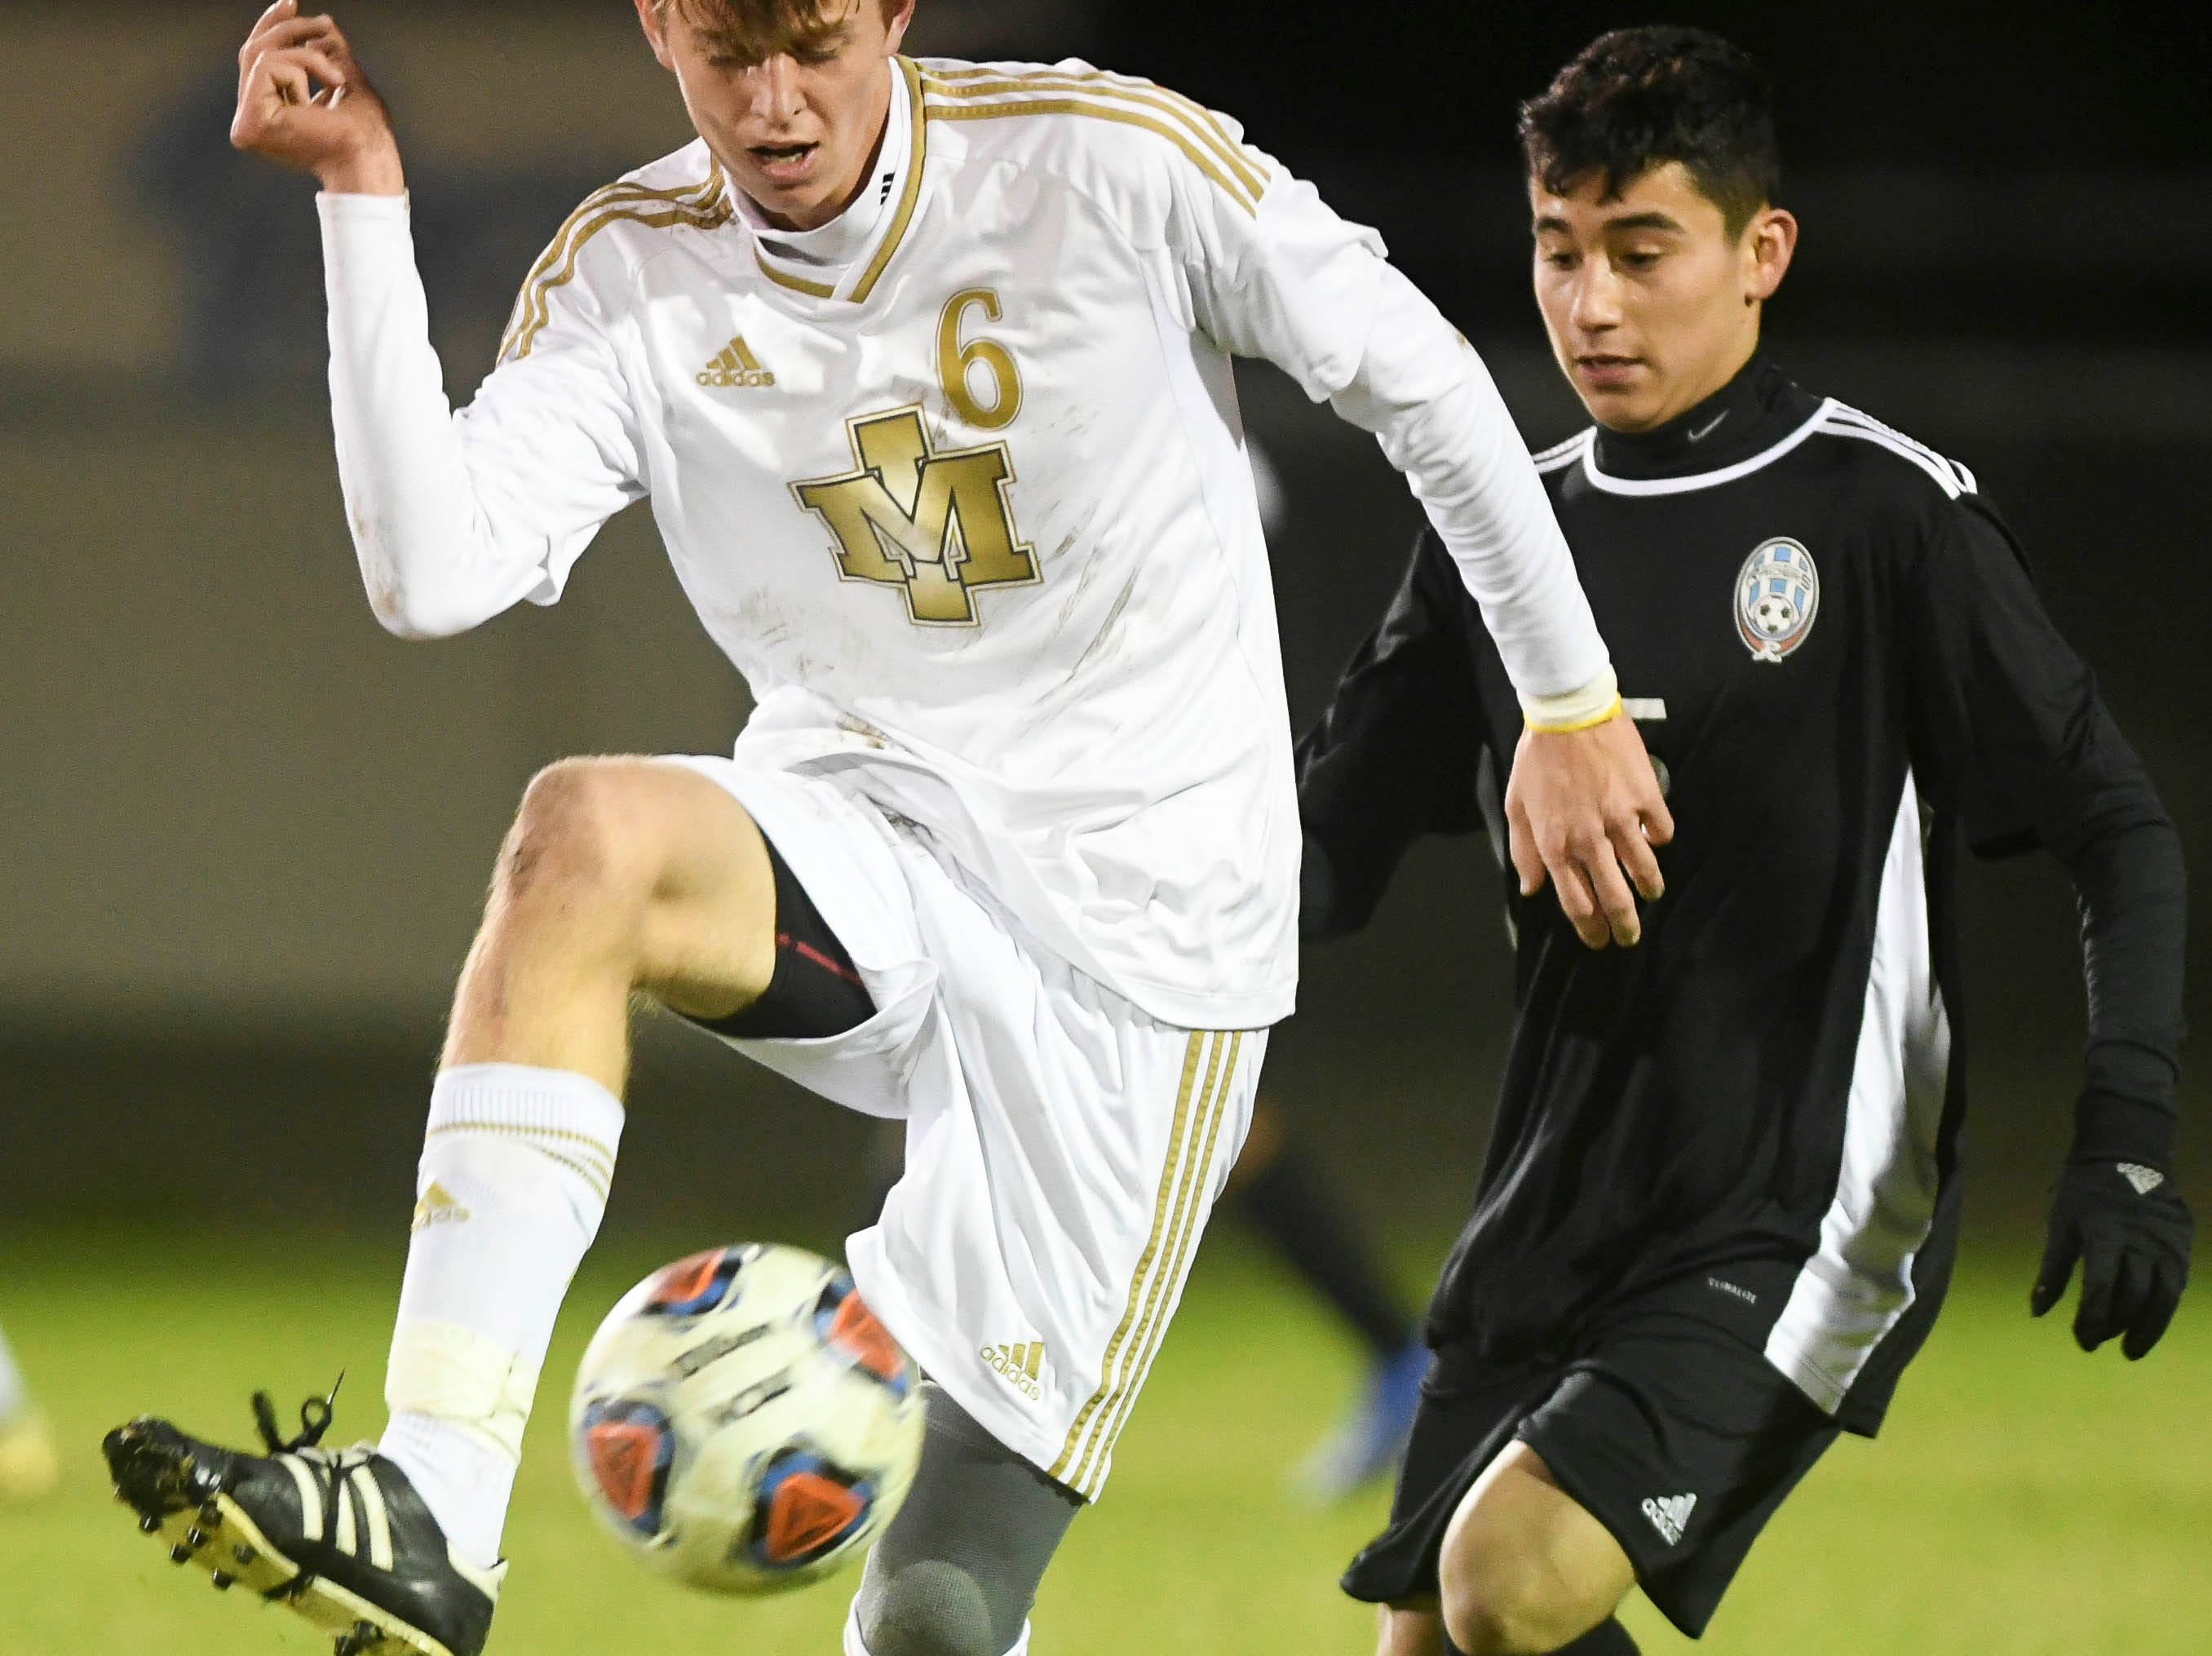 Dan Gerondidakis of Merritt Island settles the ball in front of Arath Castaneda of Rockledge  during Wednesday's District 12, Class 3A semifinal at McLarty Stadium